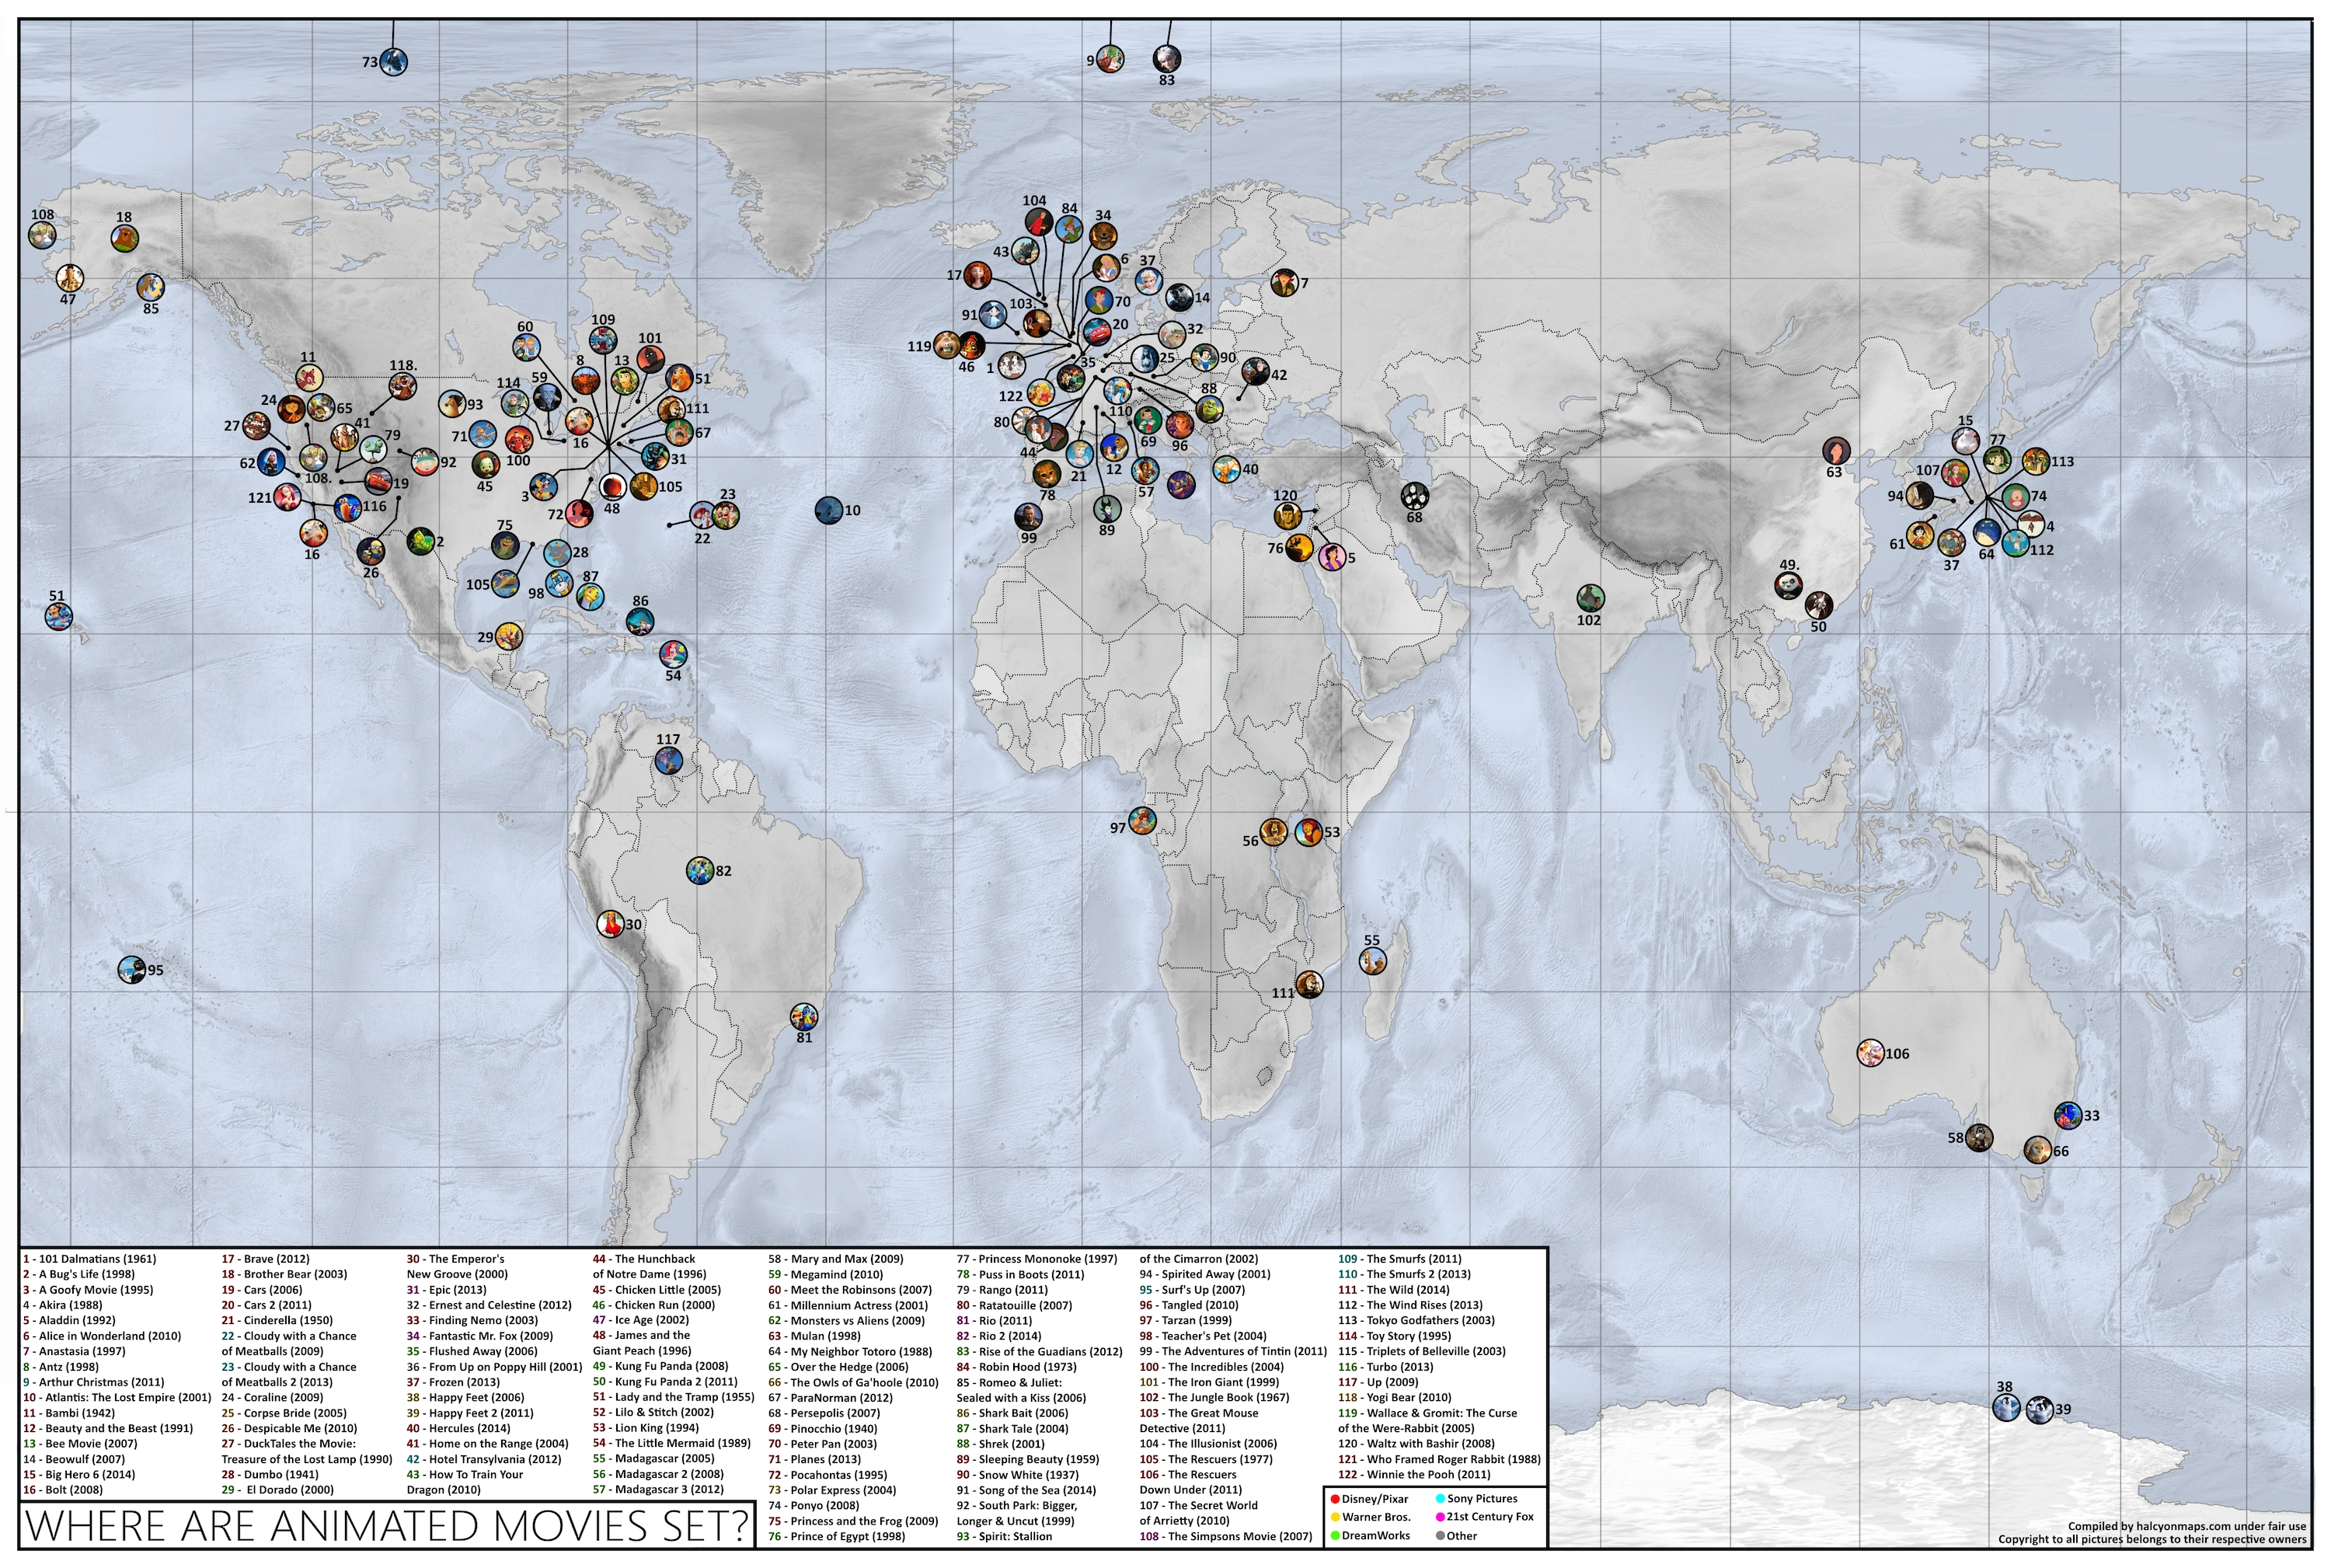 Map Shows The Location Of Popular Animated Movies Across The World